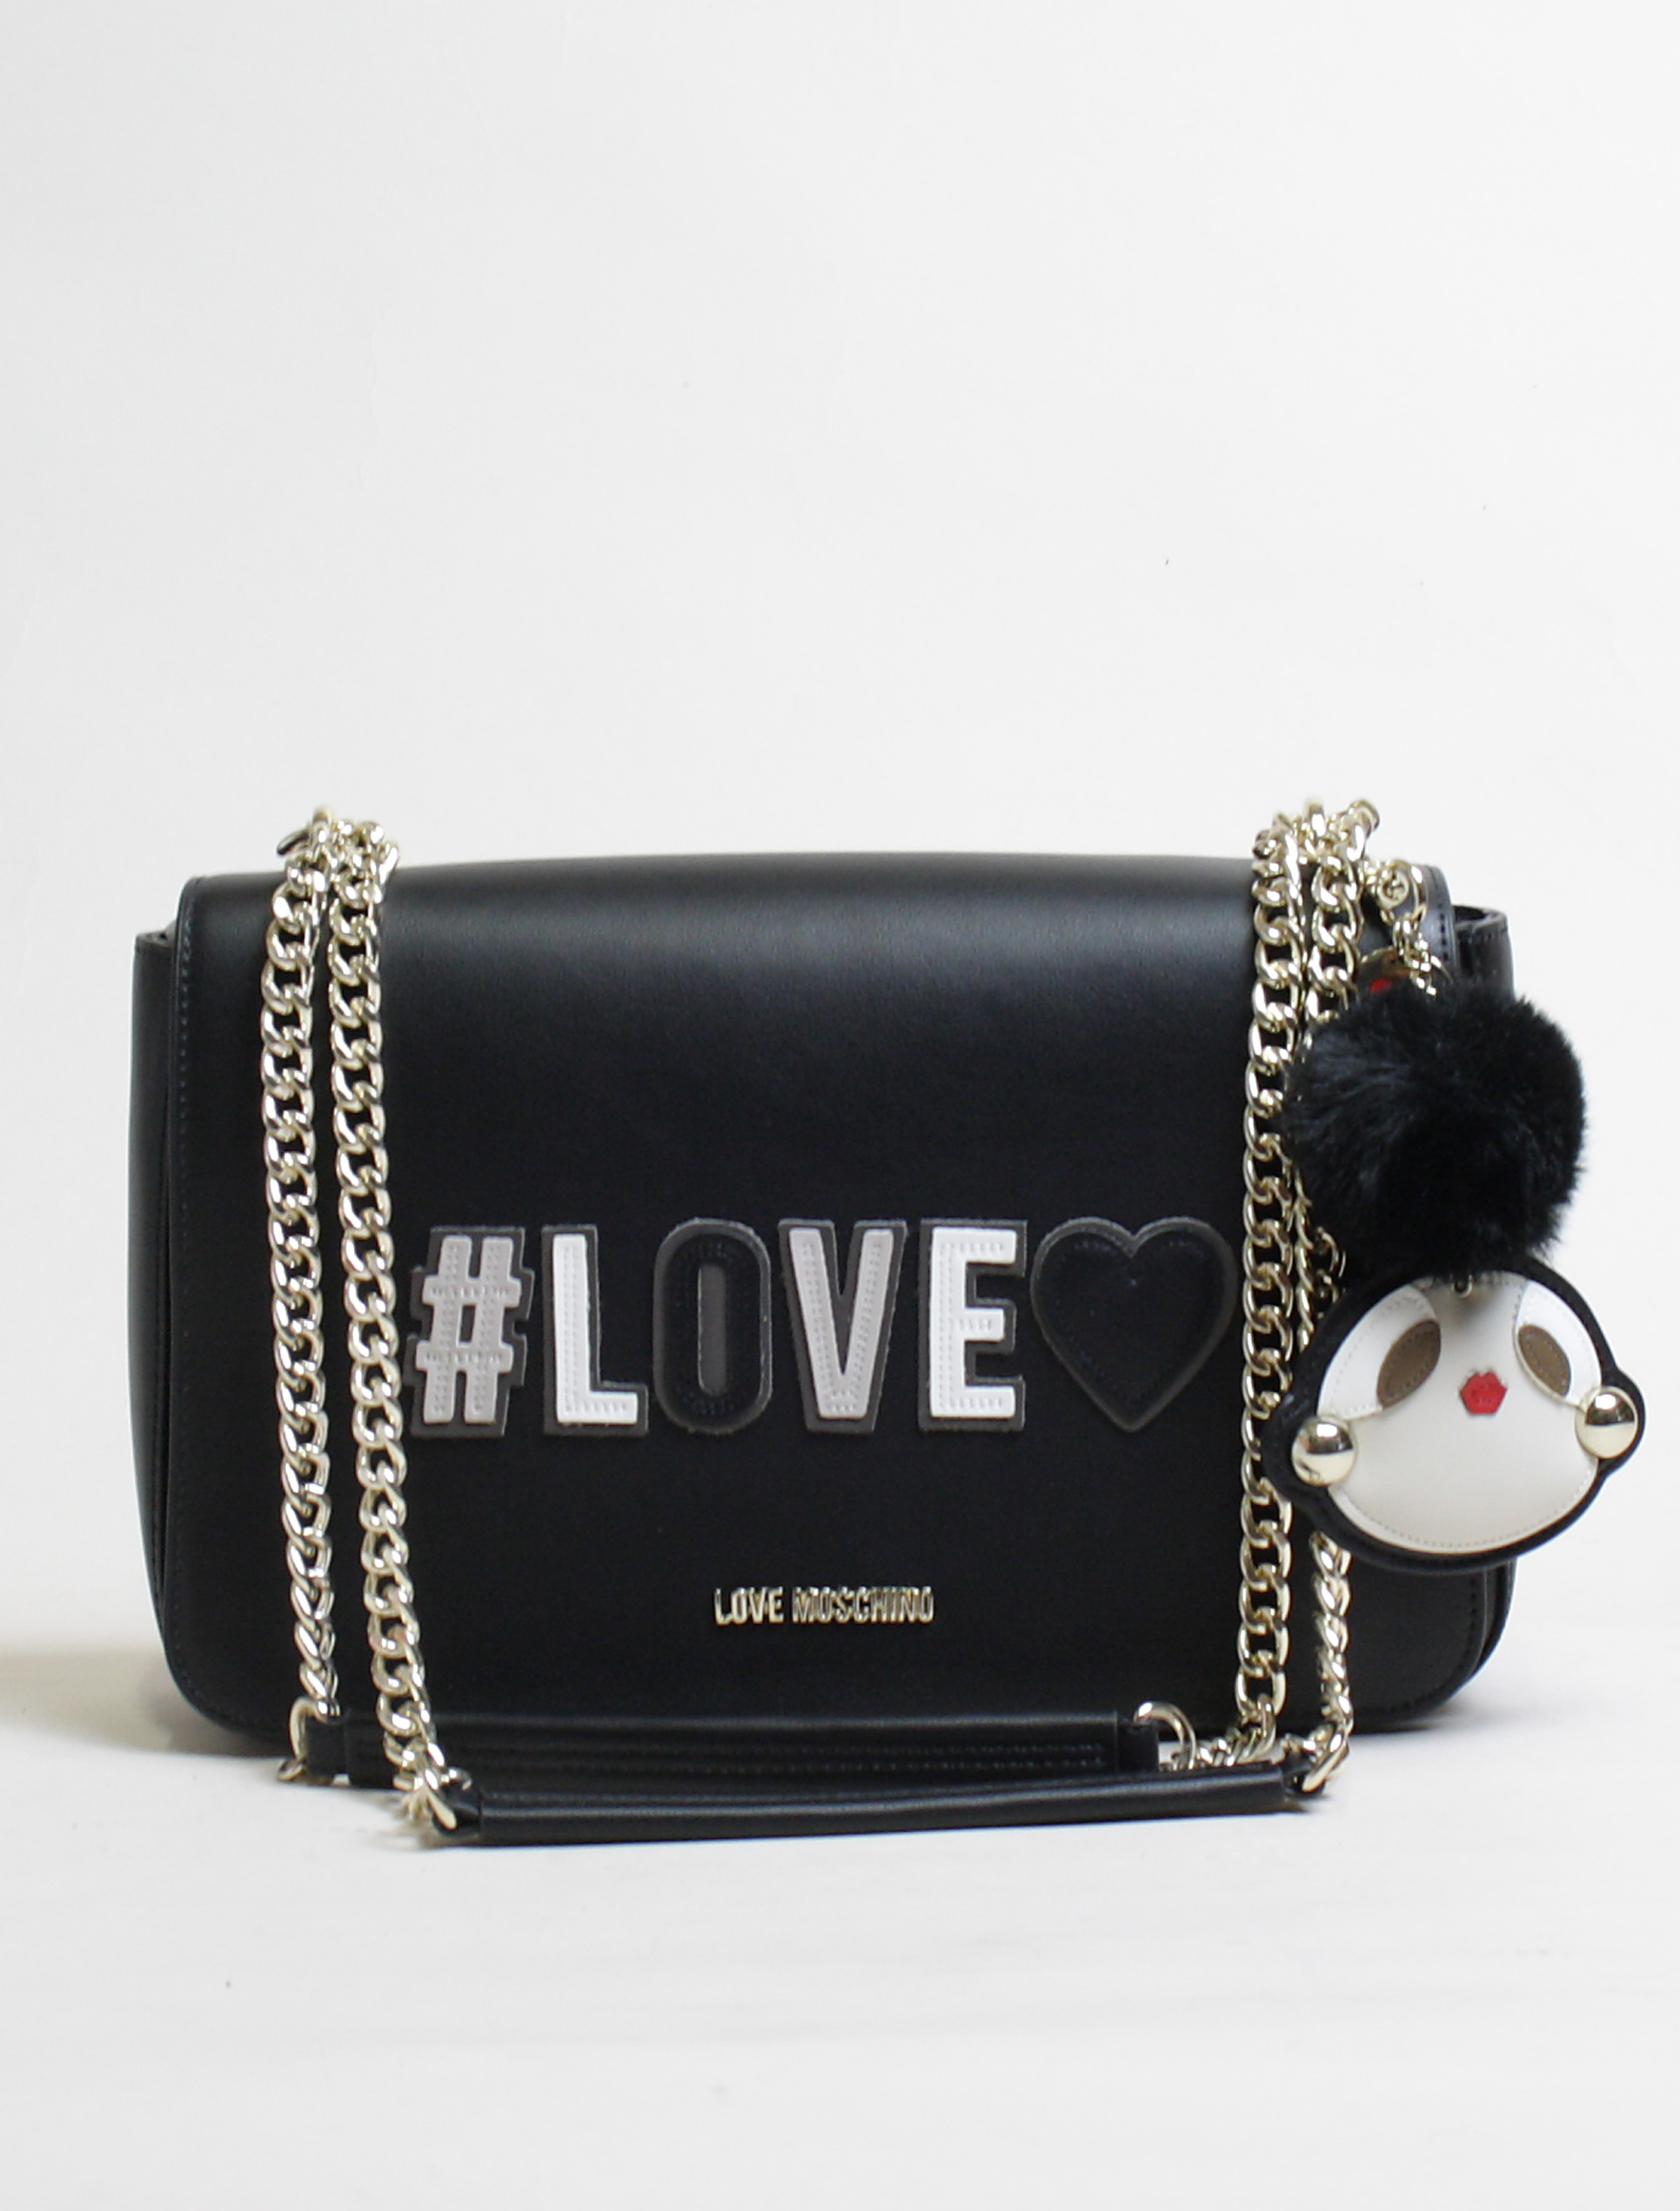 Love Moschino black Love shoulder bag